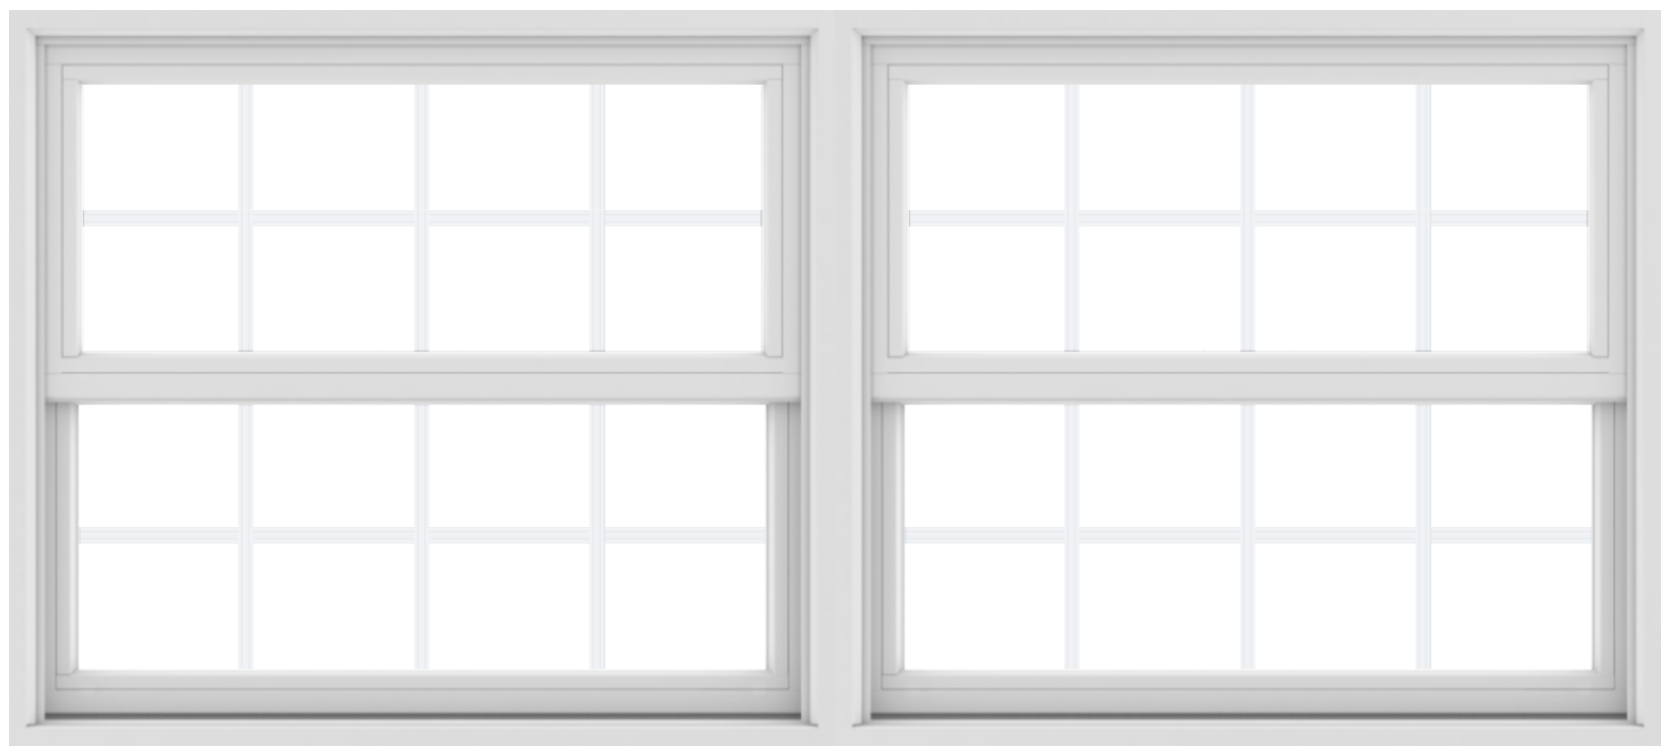 Andersen 200 Series Composite White Twin Windows w/Grilles